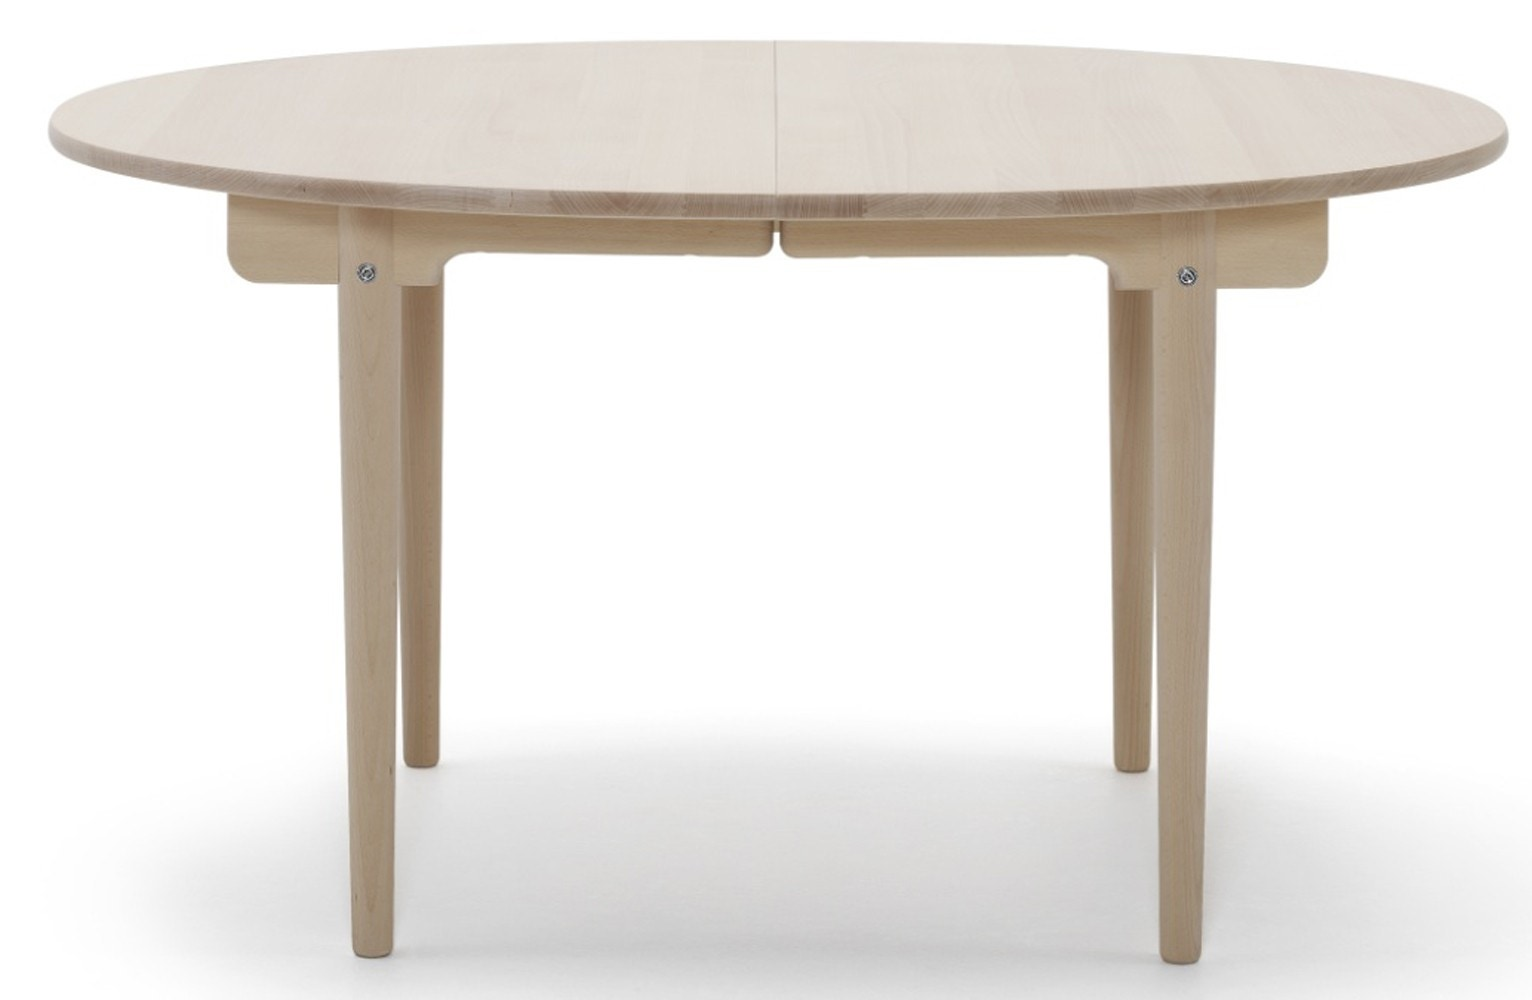 Carl Hansen & Son CH337 Dining Table (Expandable with 1 or 2 Leaves)